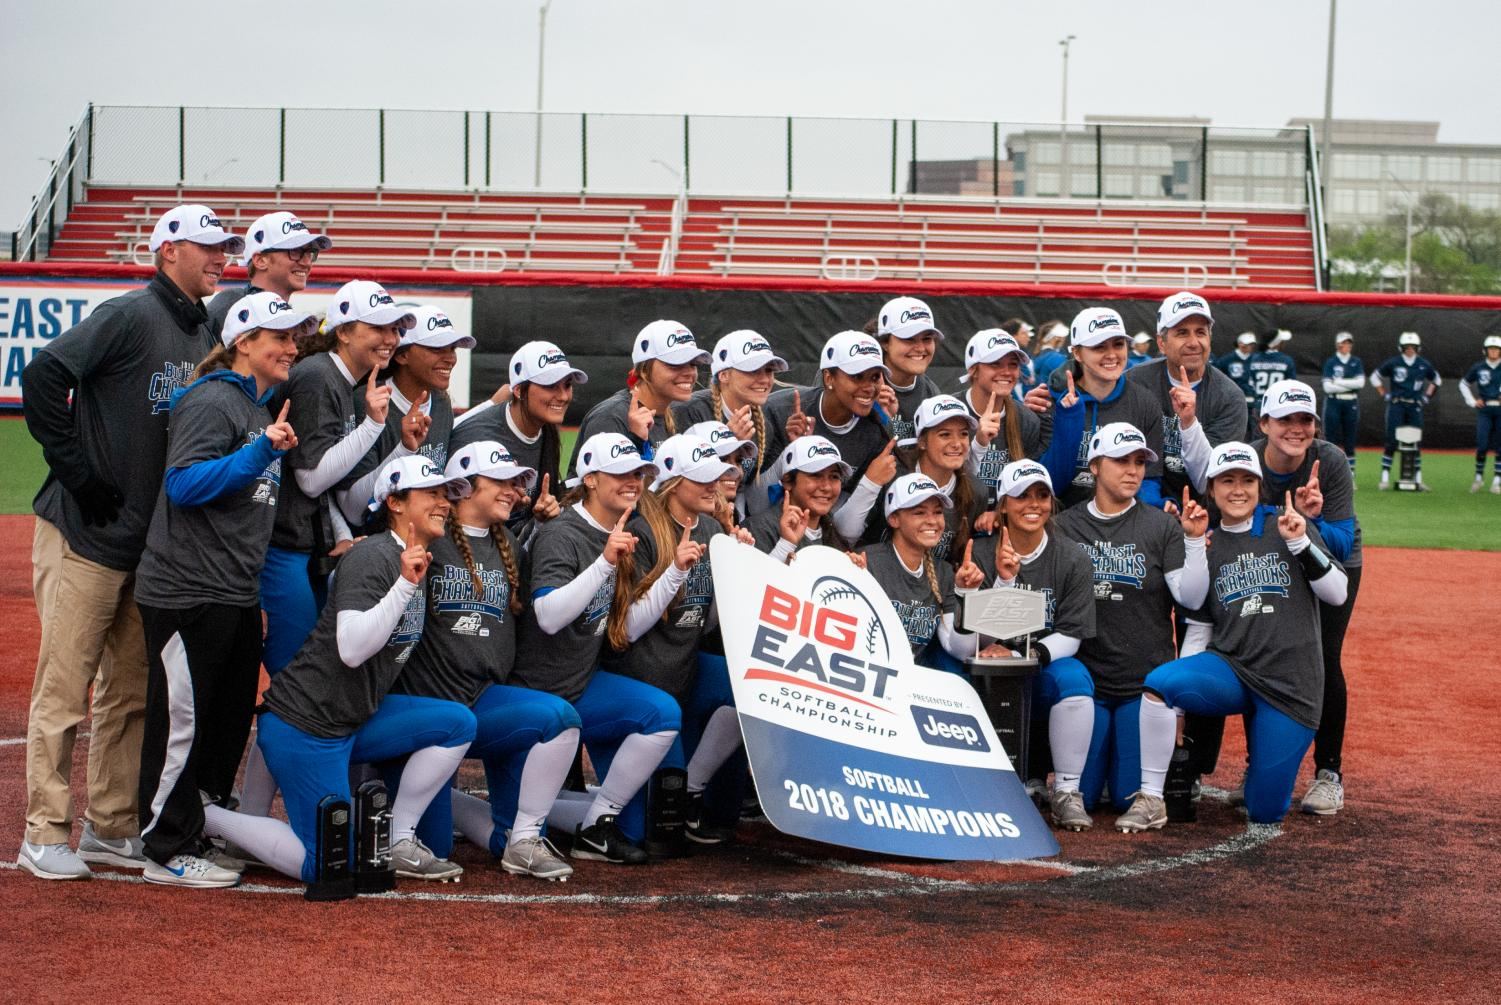 DePaul clinched their second straight NCAA Tournament appearance with a 6-2 win over Creighton on Saturday.  Jonathan Aguilar | The DePaulia